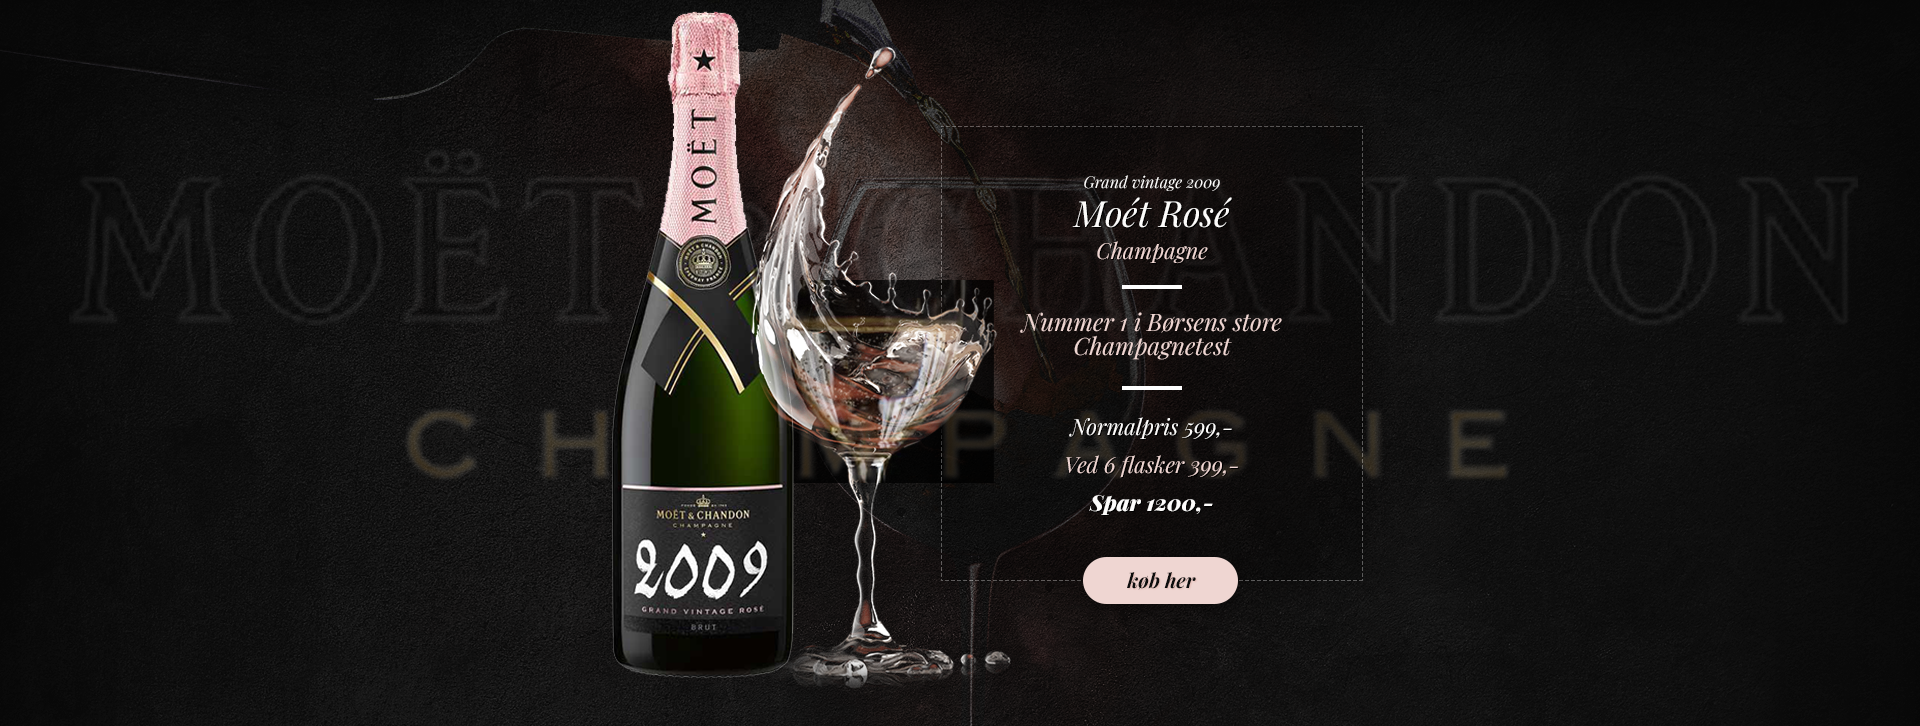 Moet & Chandon Vintage Rose 2009